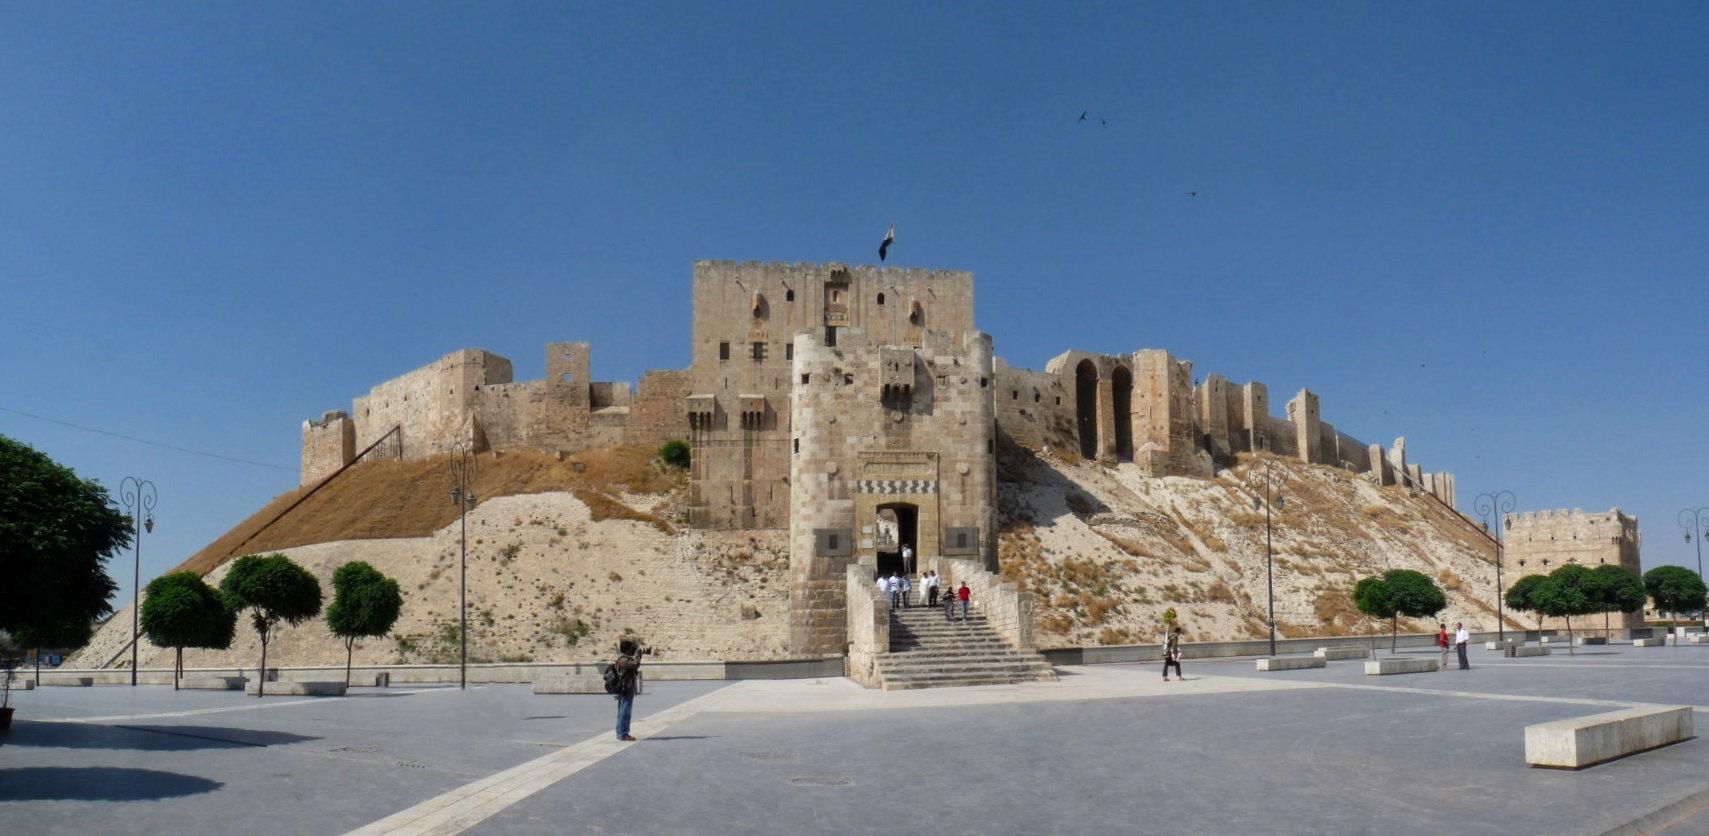 citadel of aleppo wikipedia. Black Bedroom Furniture Sets. Home Design Ideas